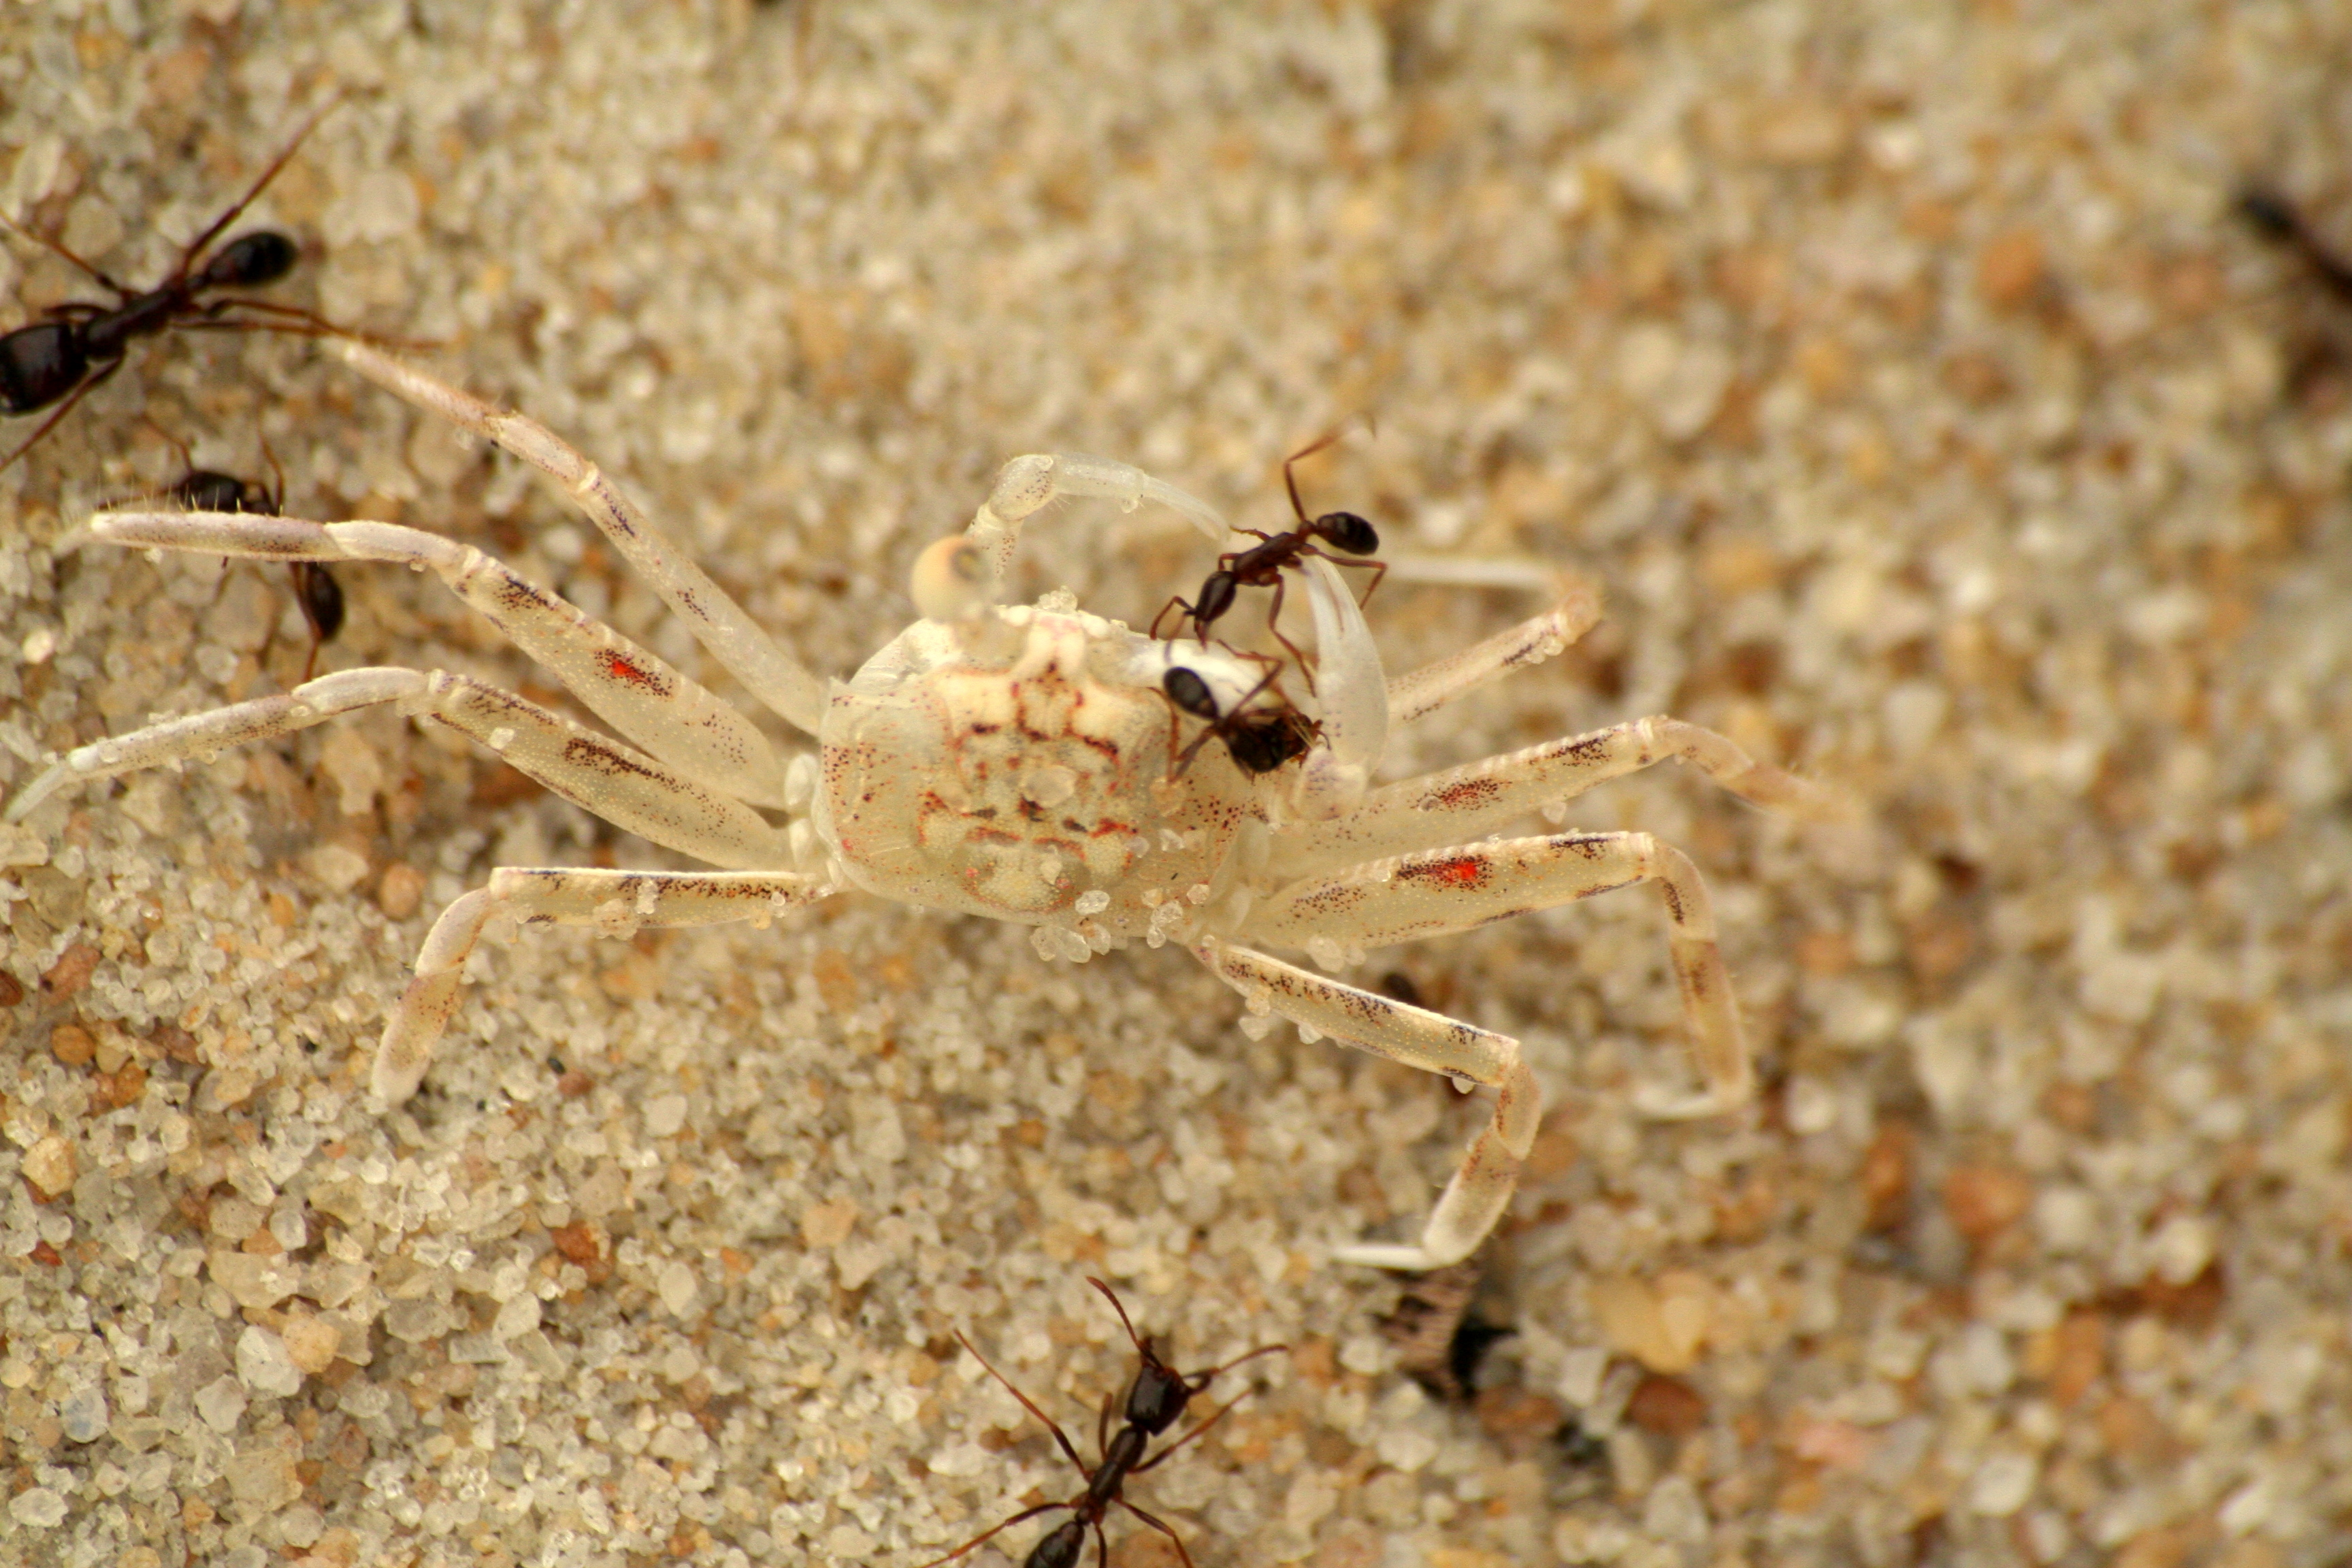 File:Army ants vs crab - Gabon.jpg - Wikimedia Commons